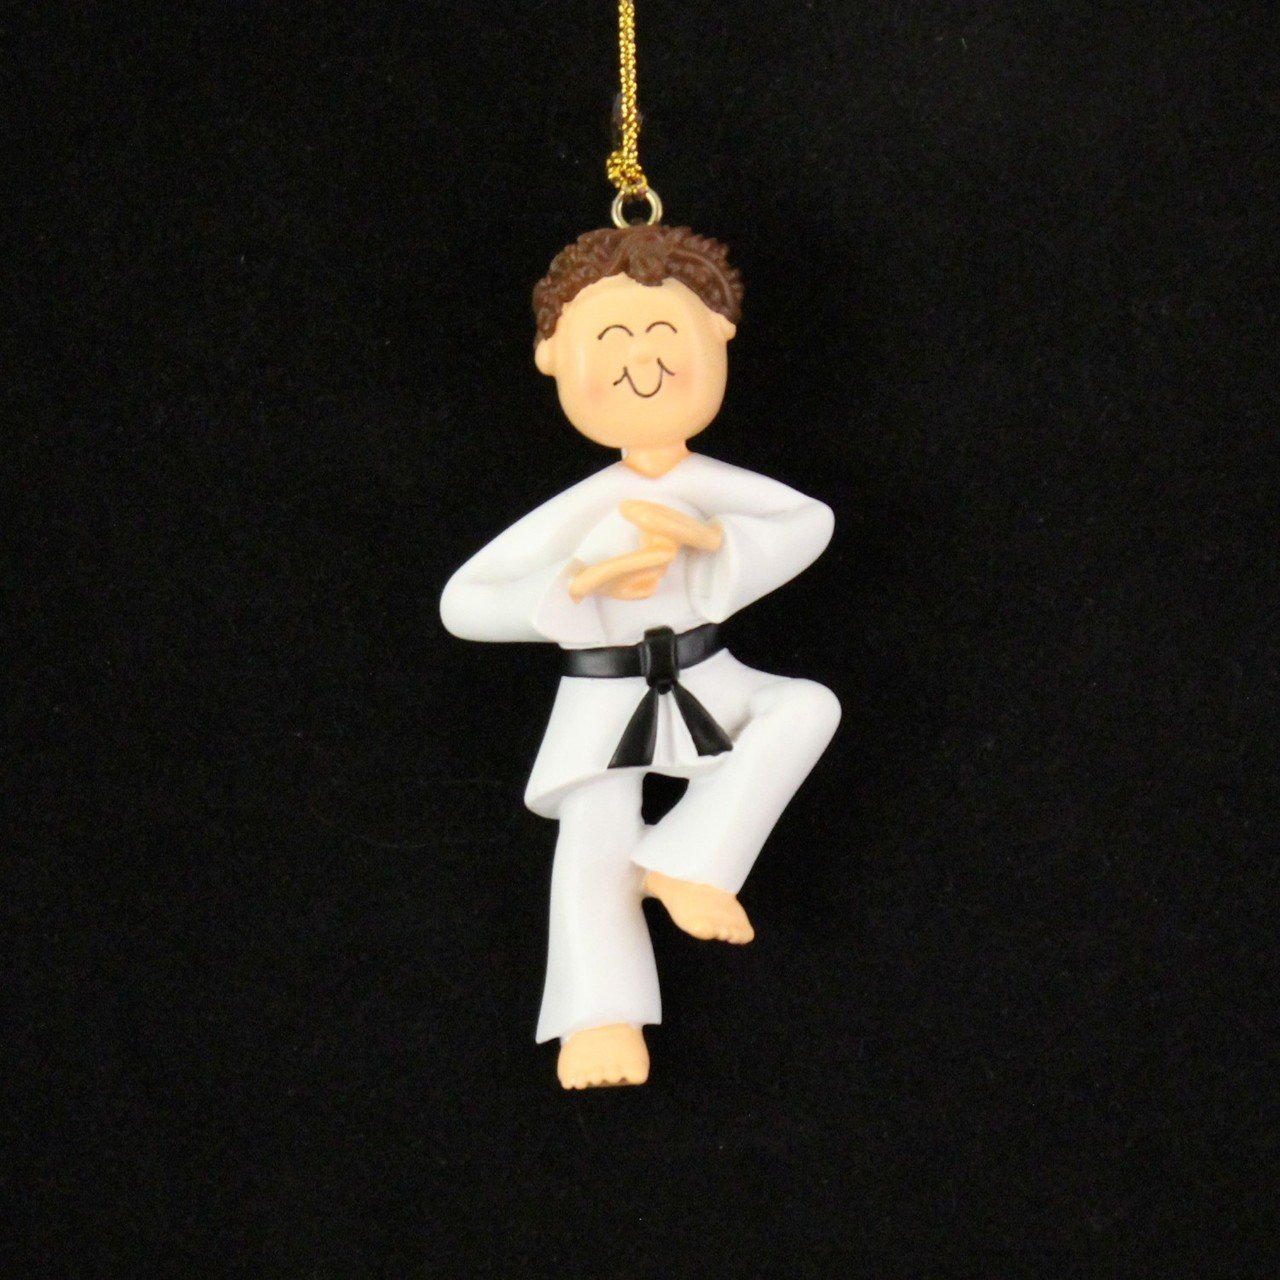 Karate ornament - Amazon Com Ornament Central Oc 024 Mbr Male Karate Christmas Ornament 3 1 2 Inch Brown Home Kitchen